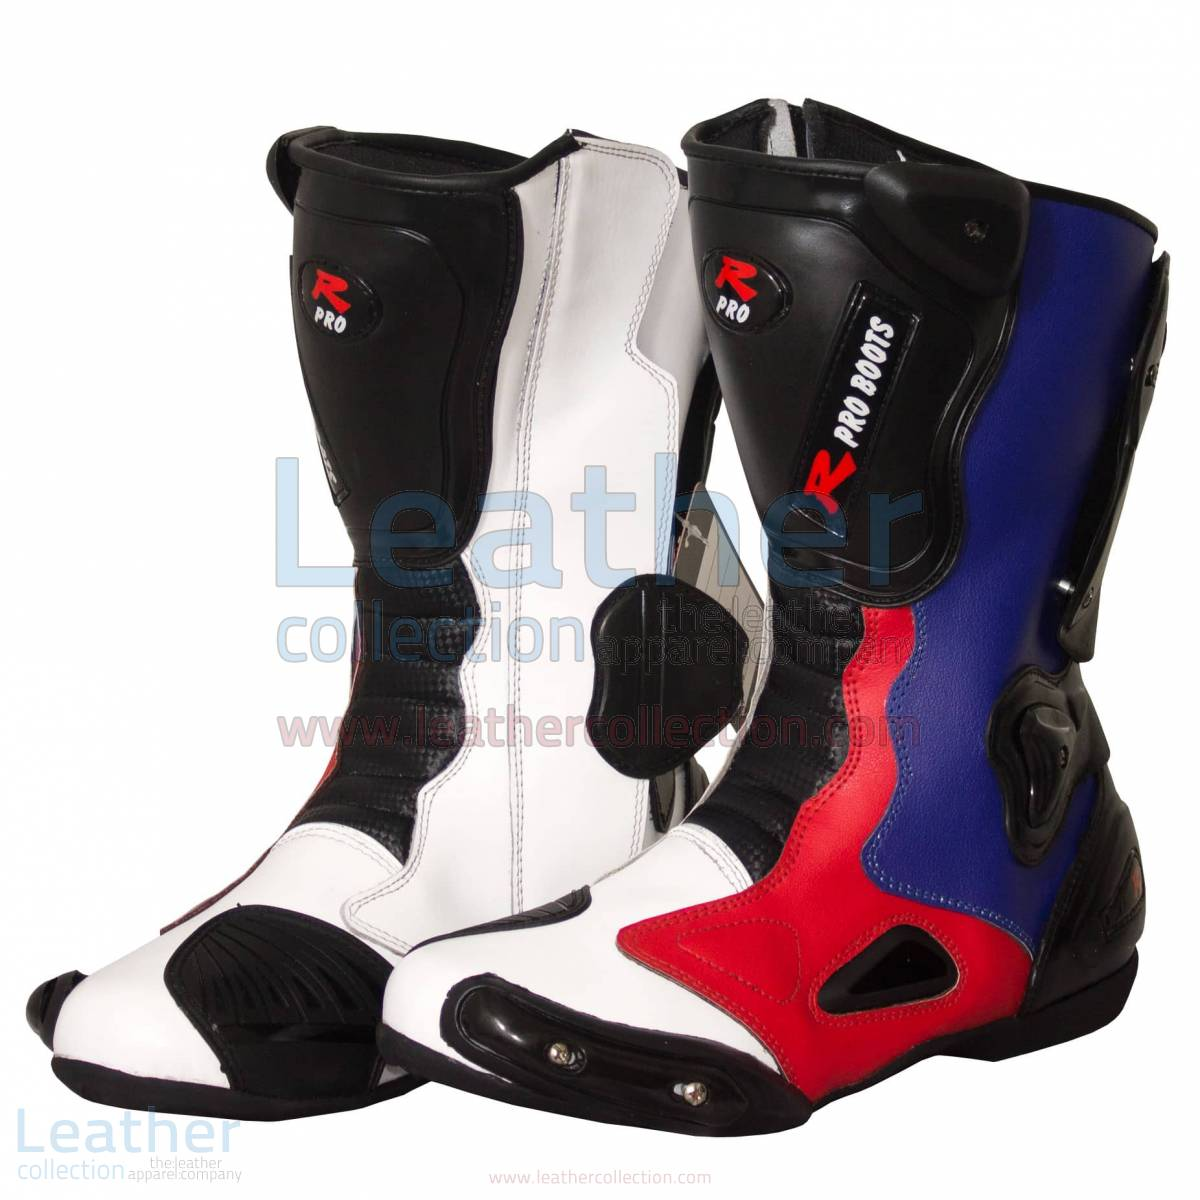 Leon Haslam BMW Motorcycle Boots – BMW Boot